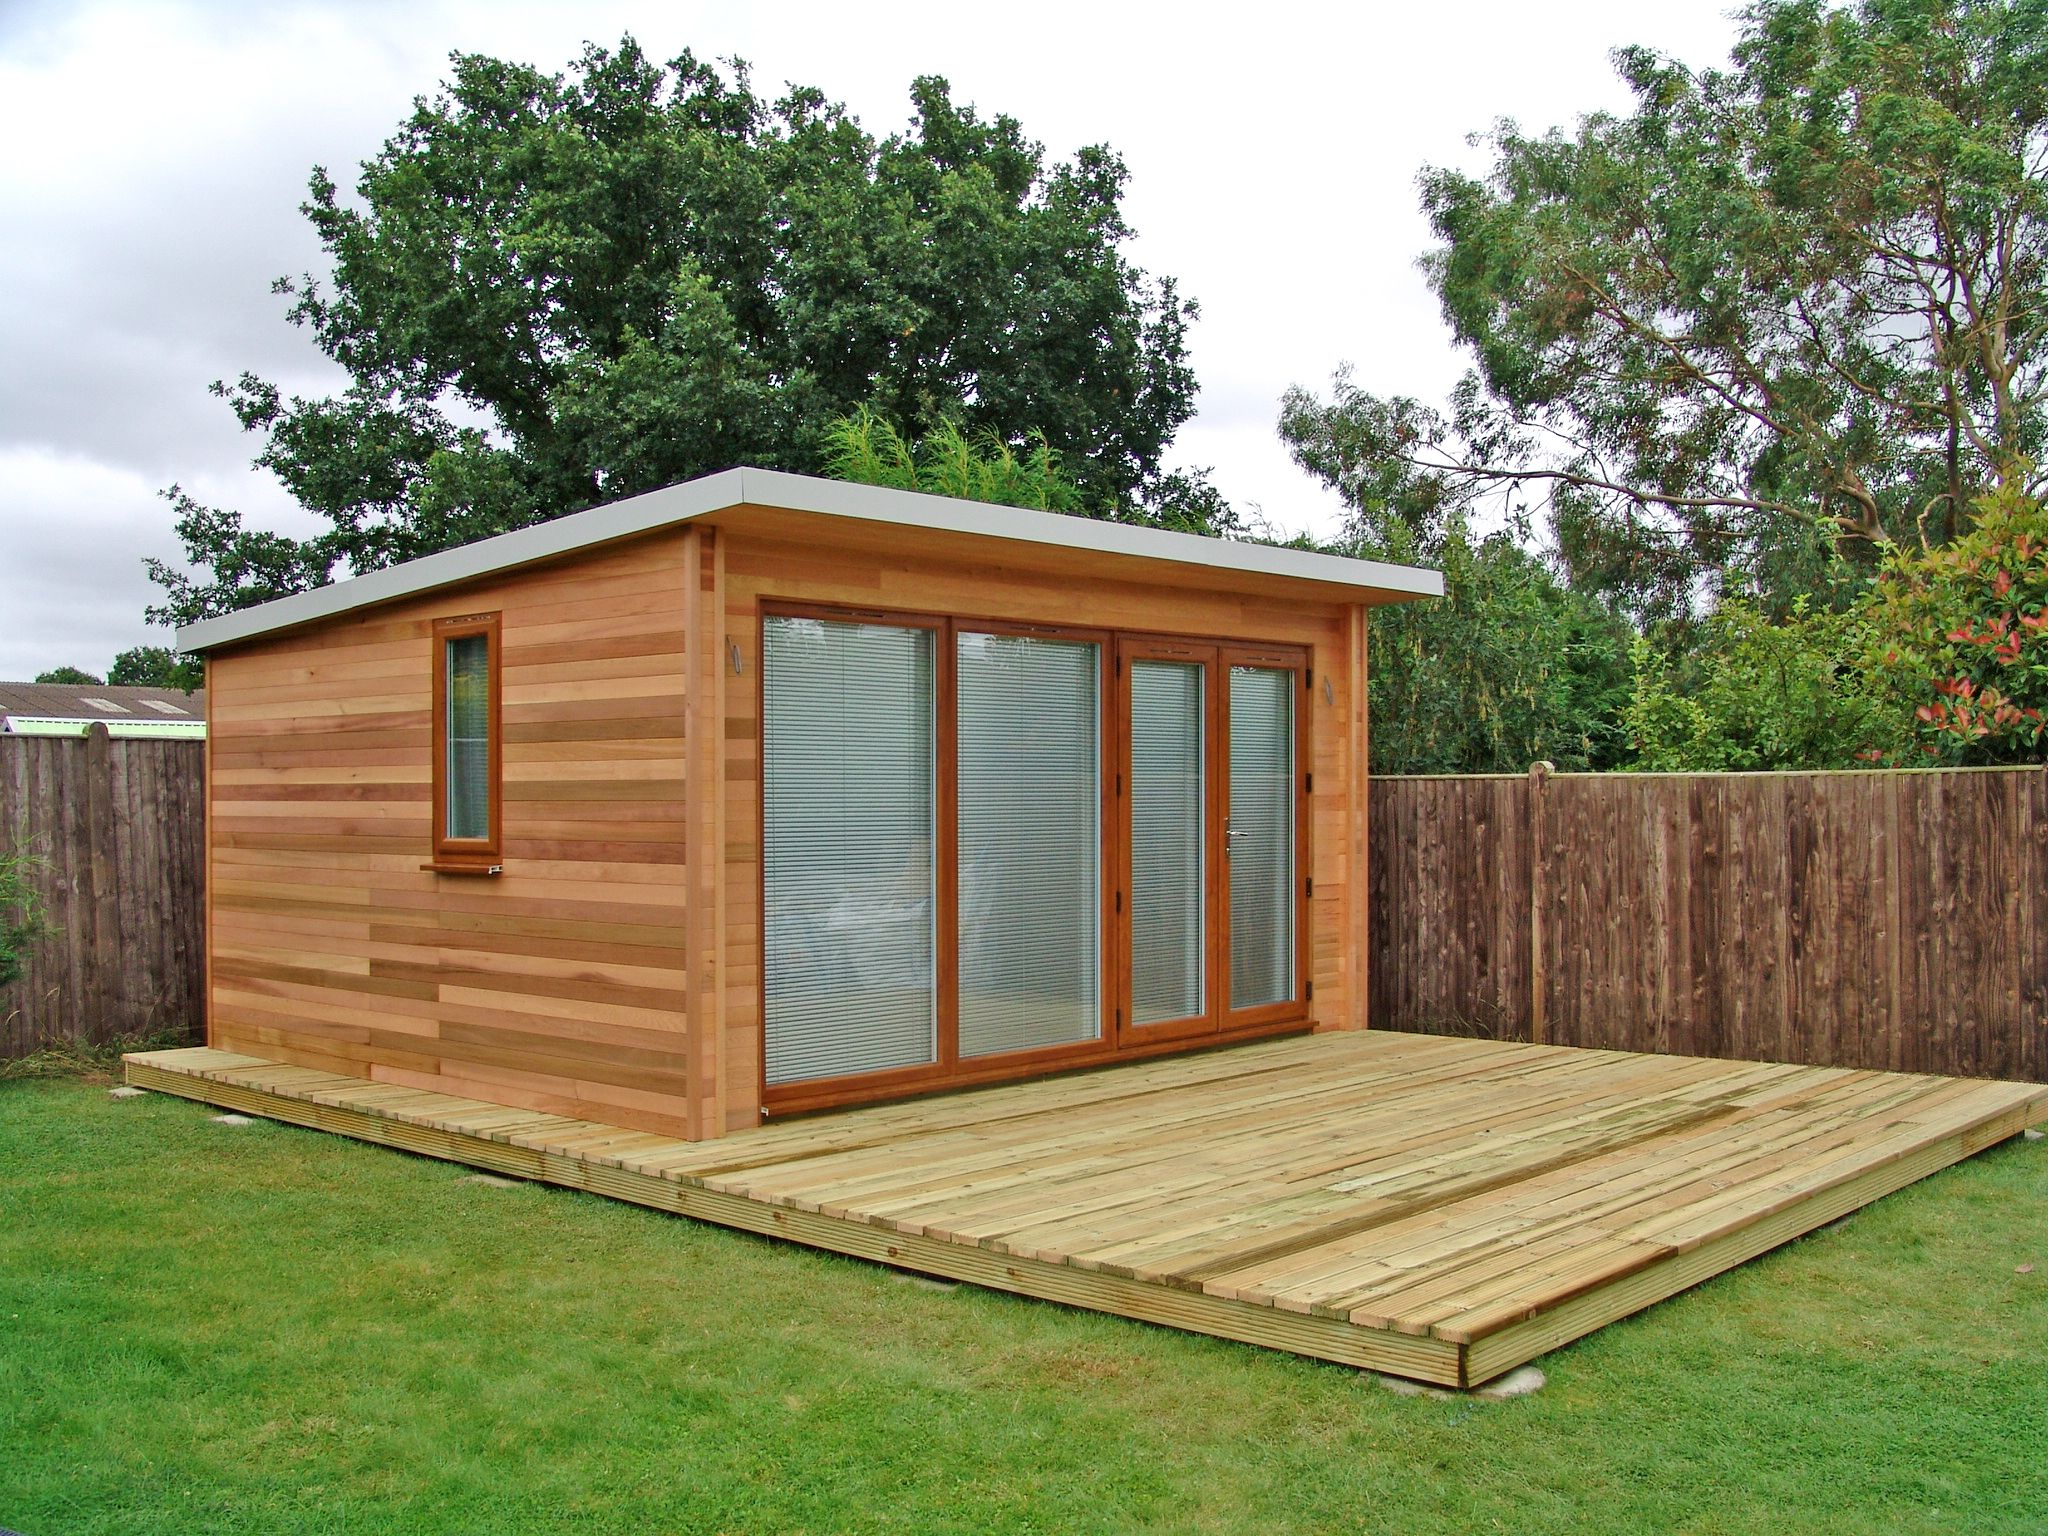 Garden studio with large decking area by garden lodges for Garden area ideas